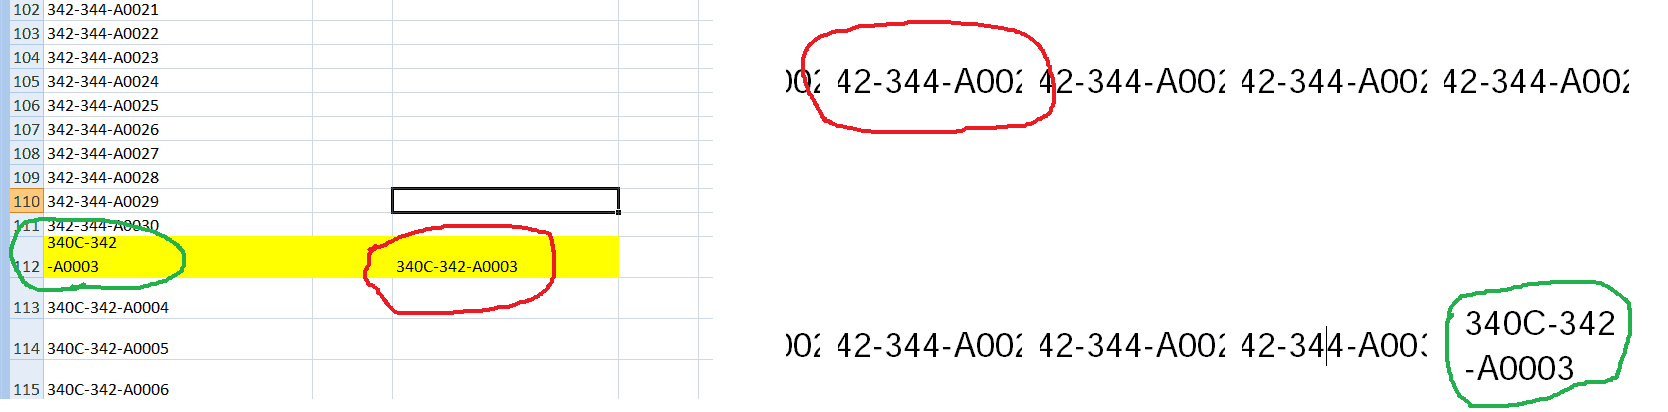 Number-too-long excel